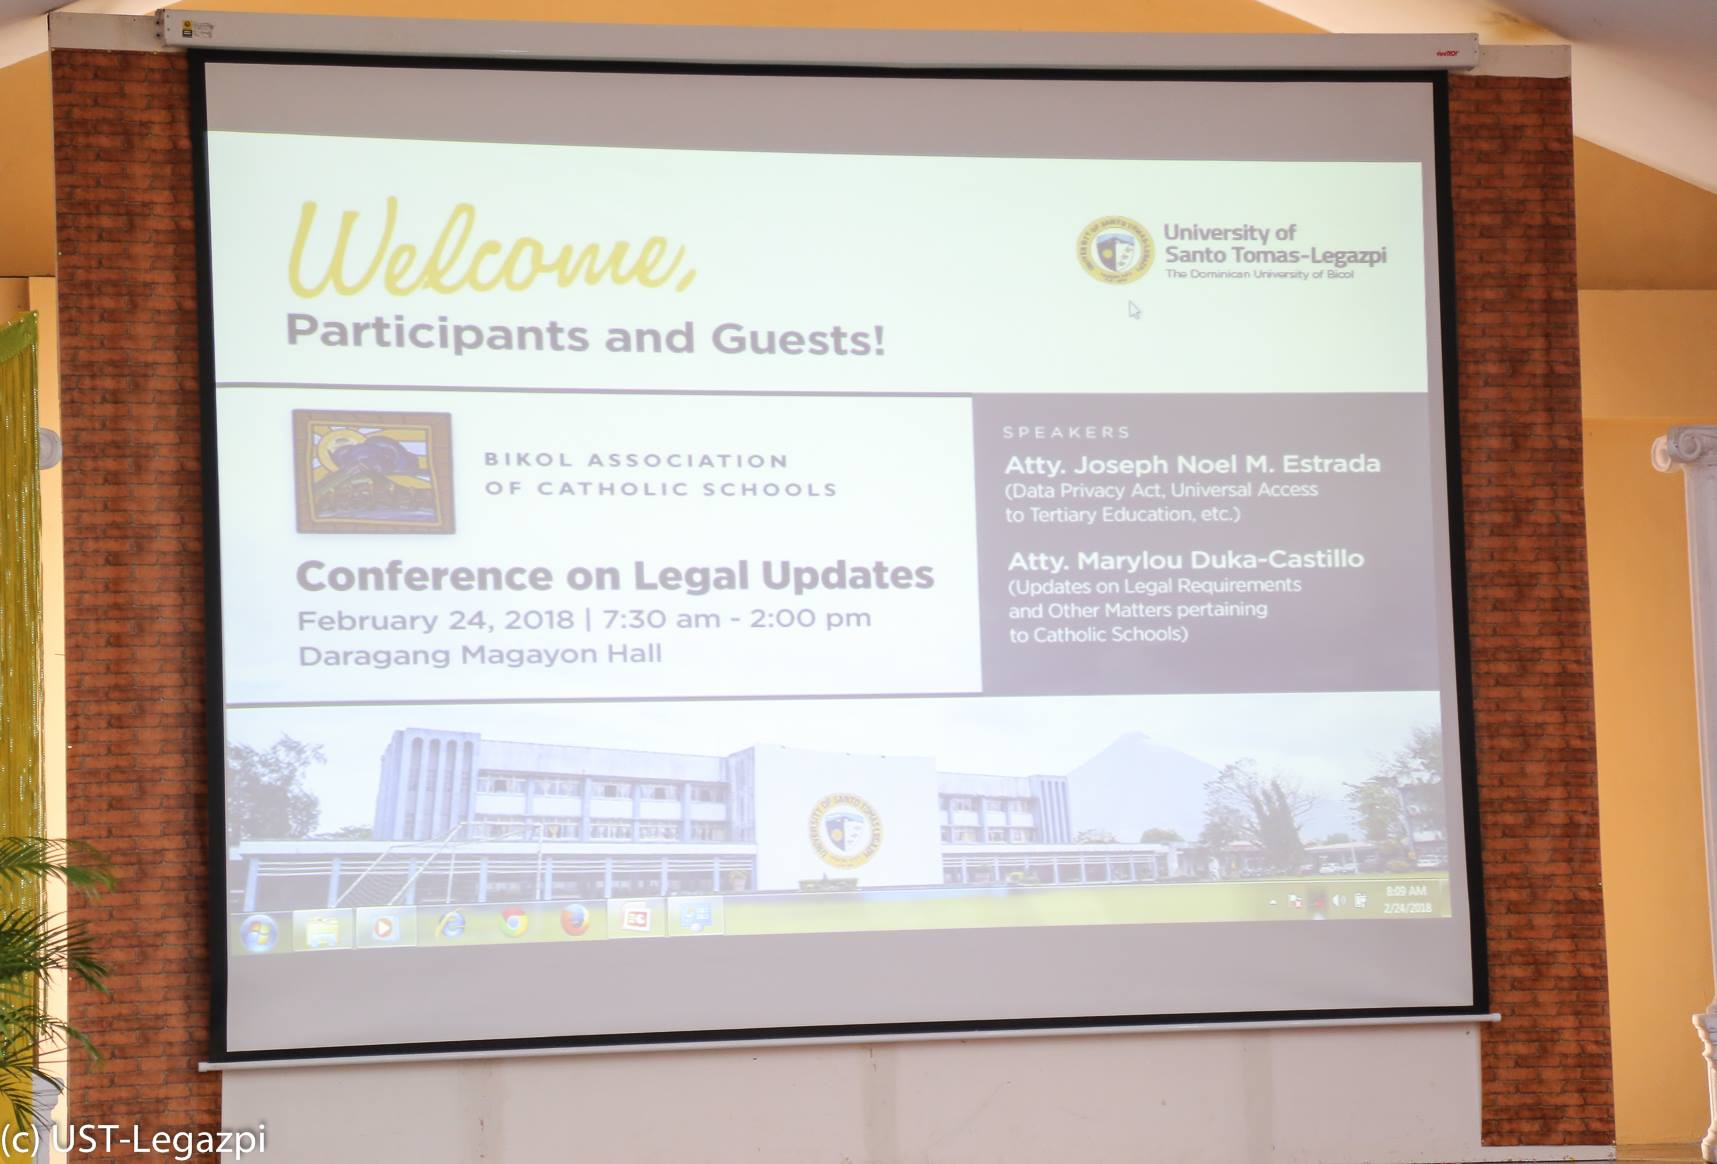 Conference on Legal Updates